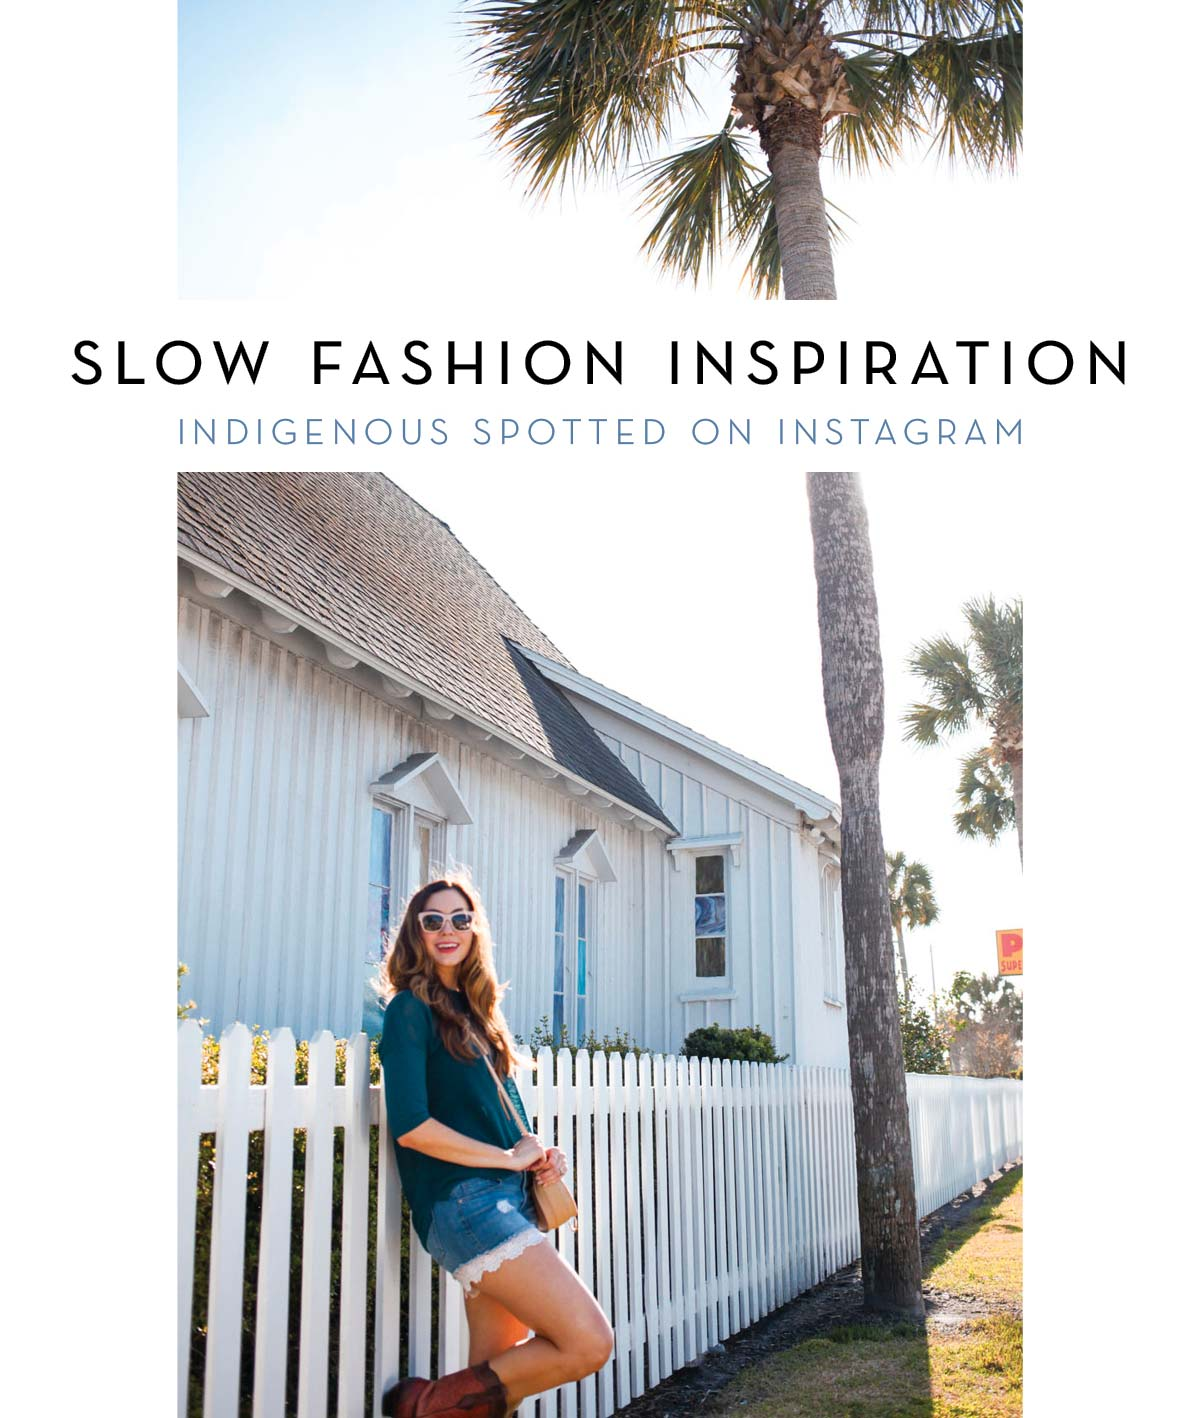 Slow Fashion Inspiration | sustainable clothing brand Indigenous spotted on Instagram